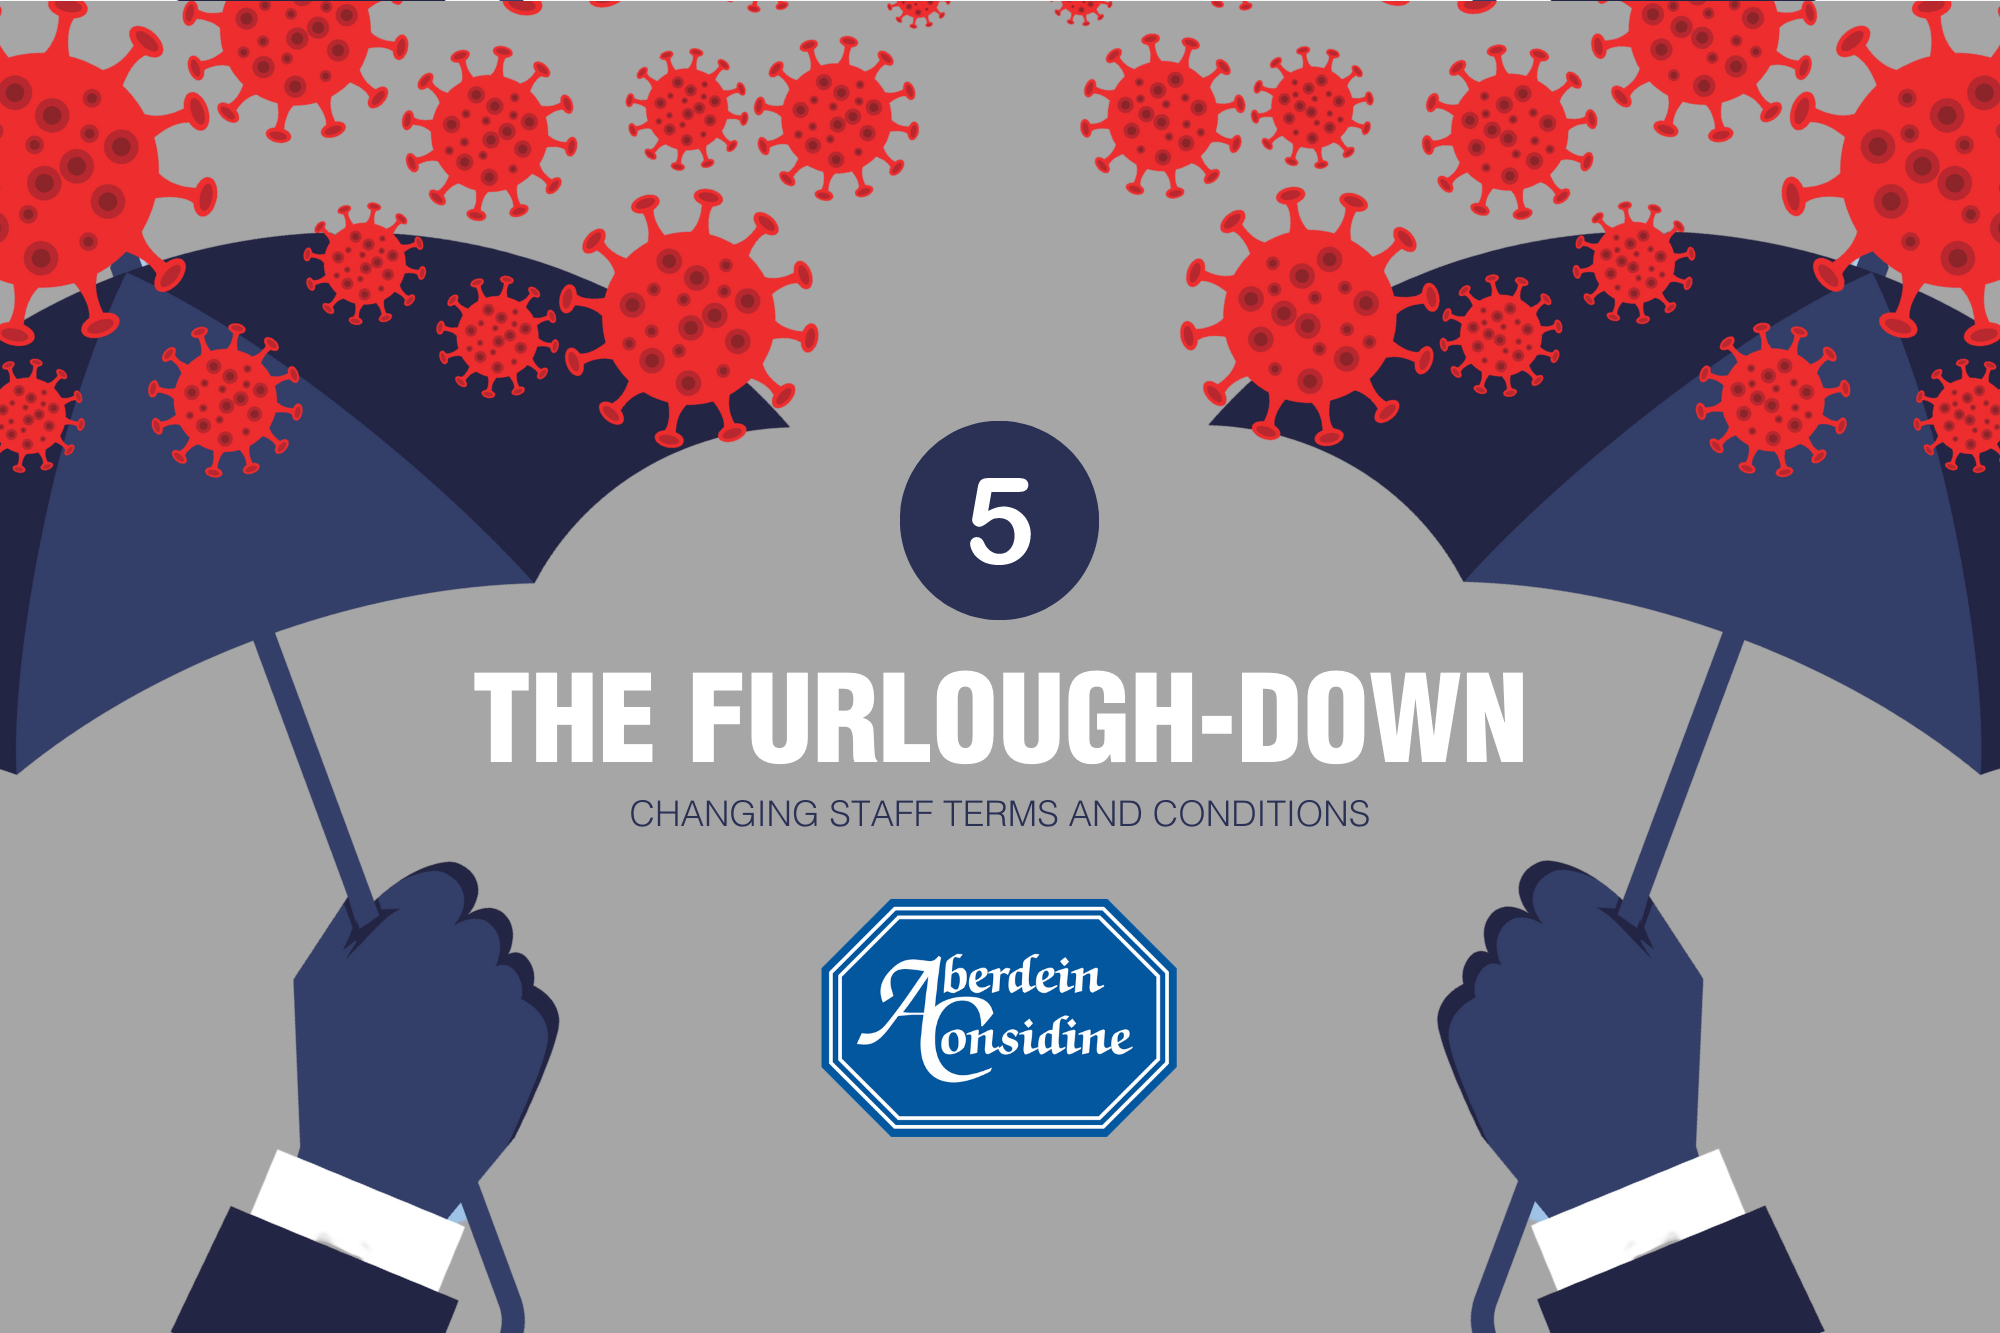 The Furlough-down: Changing an employee's terms & conditions